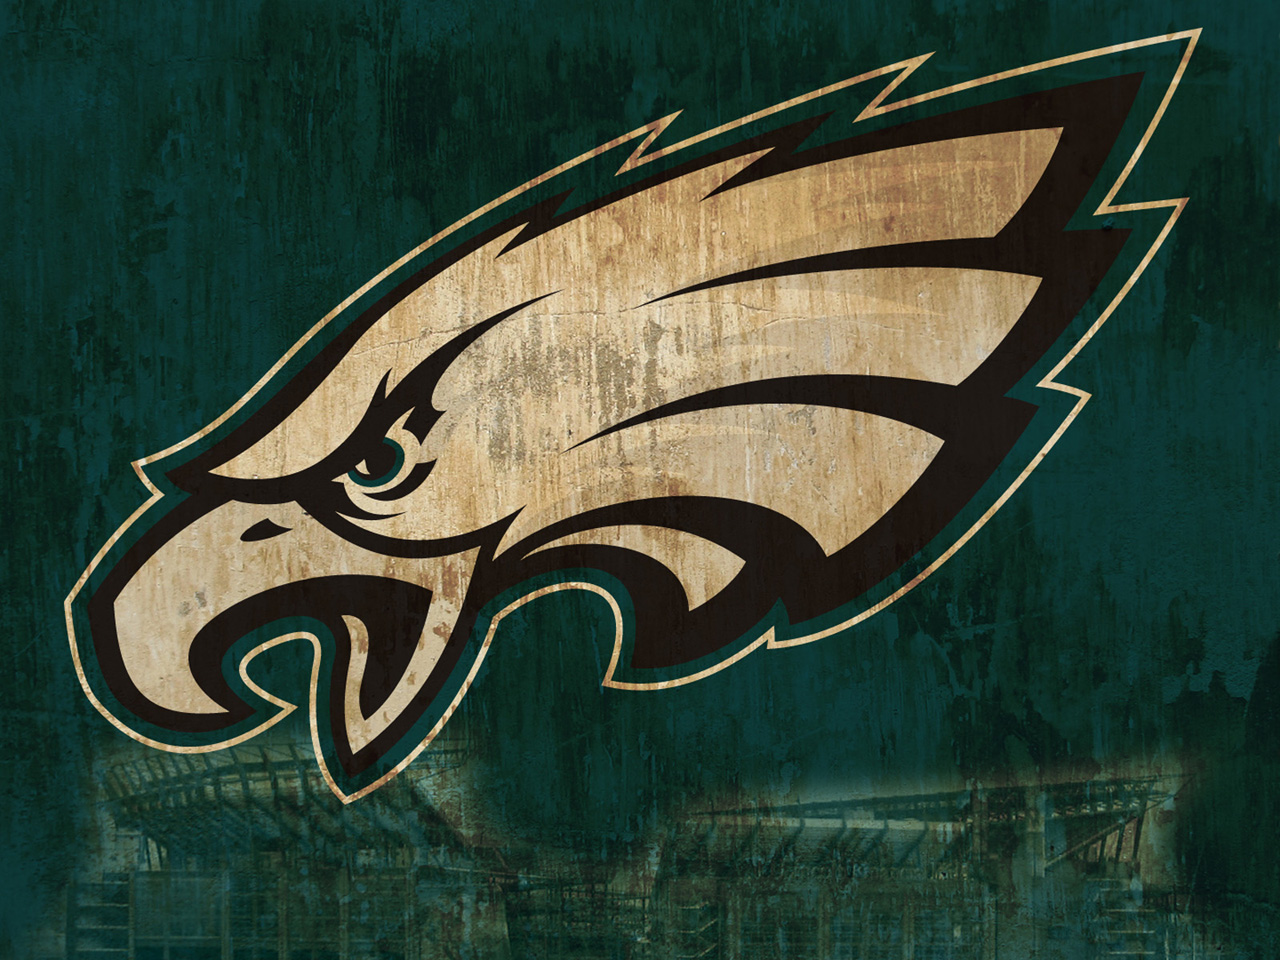 ... Wallpaper Philadelphia Eagles · Go Eagles on Pinterest · Download ...